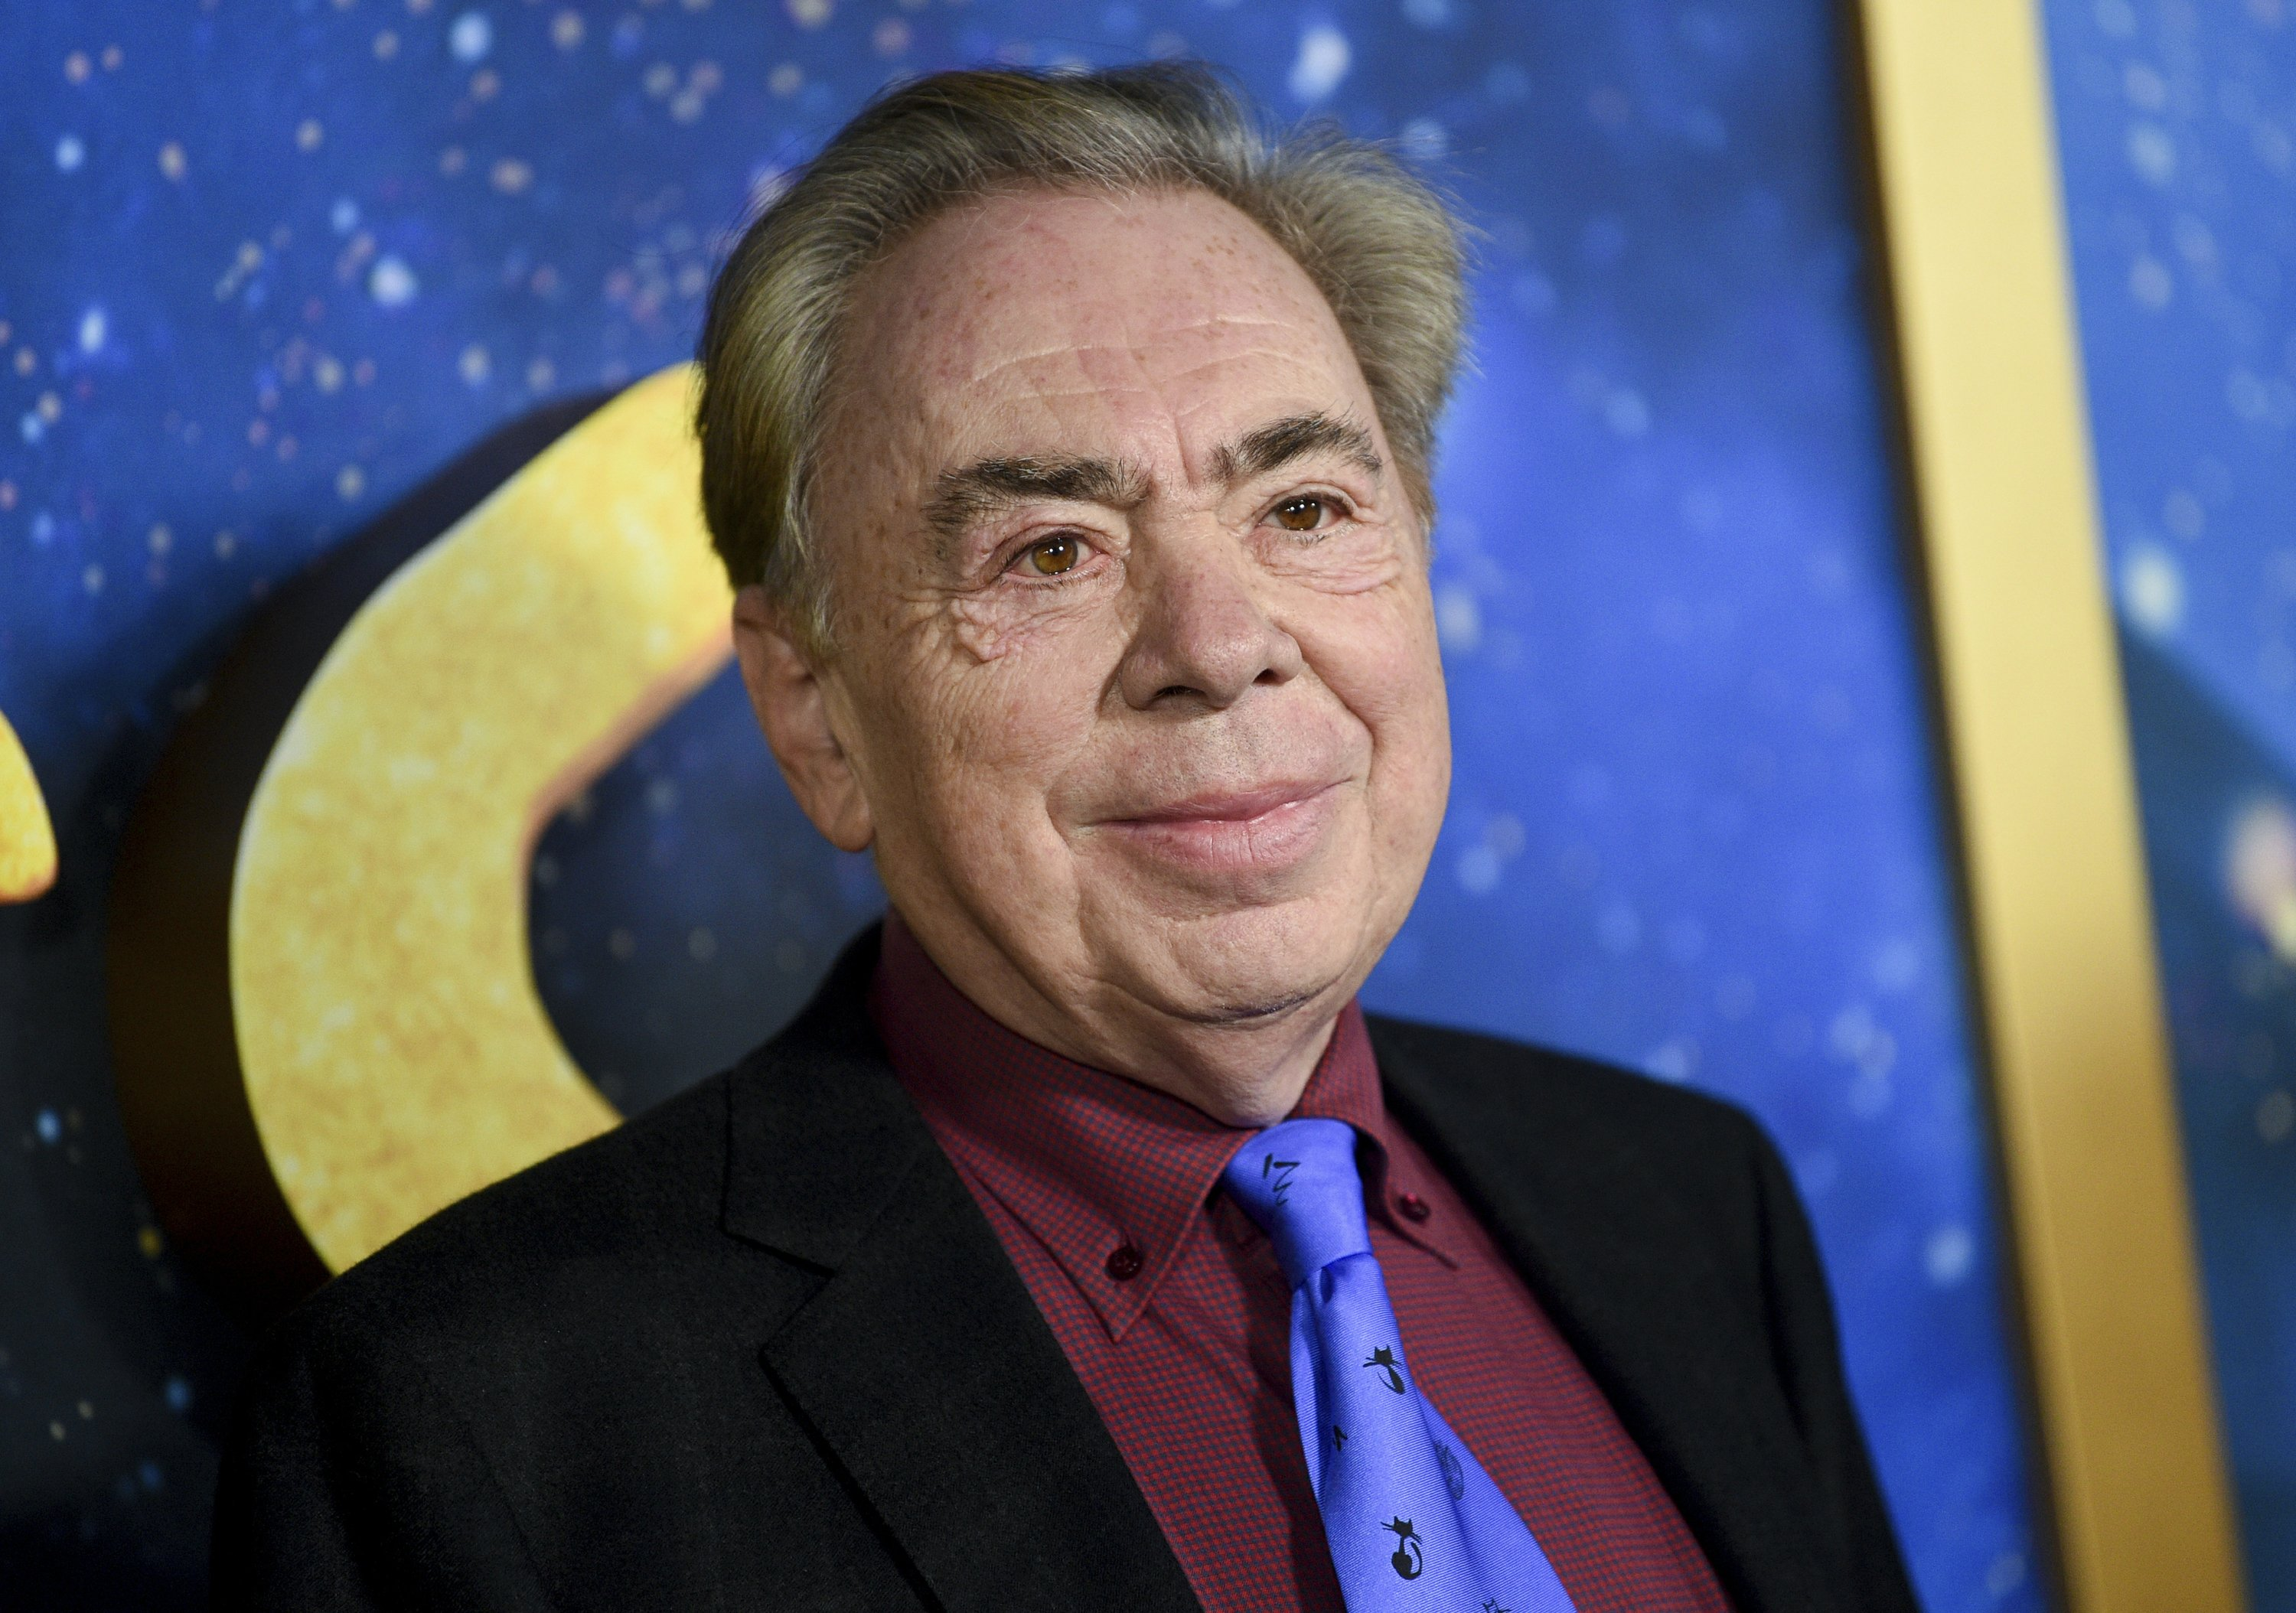 Andrew Lloyd Webber Hated 'Cats' Movie So Much He Bought a Therapy Dog